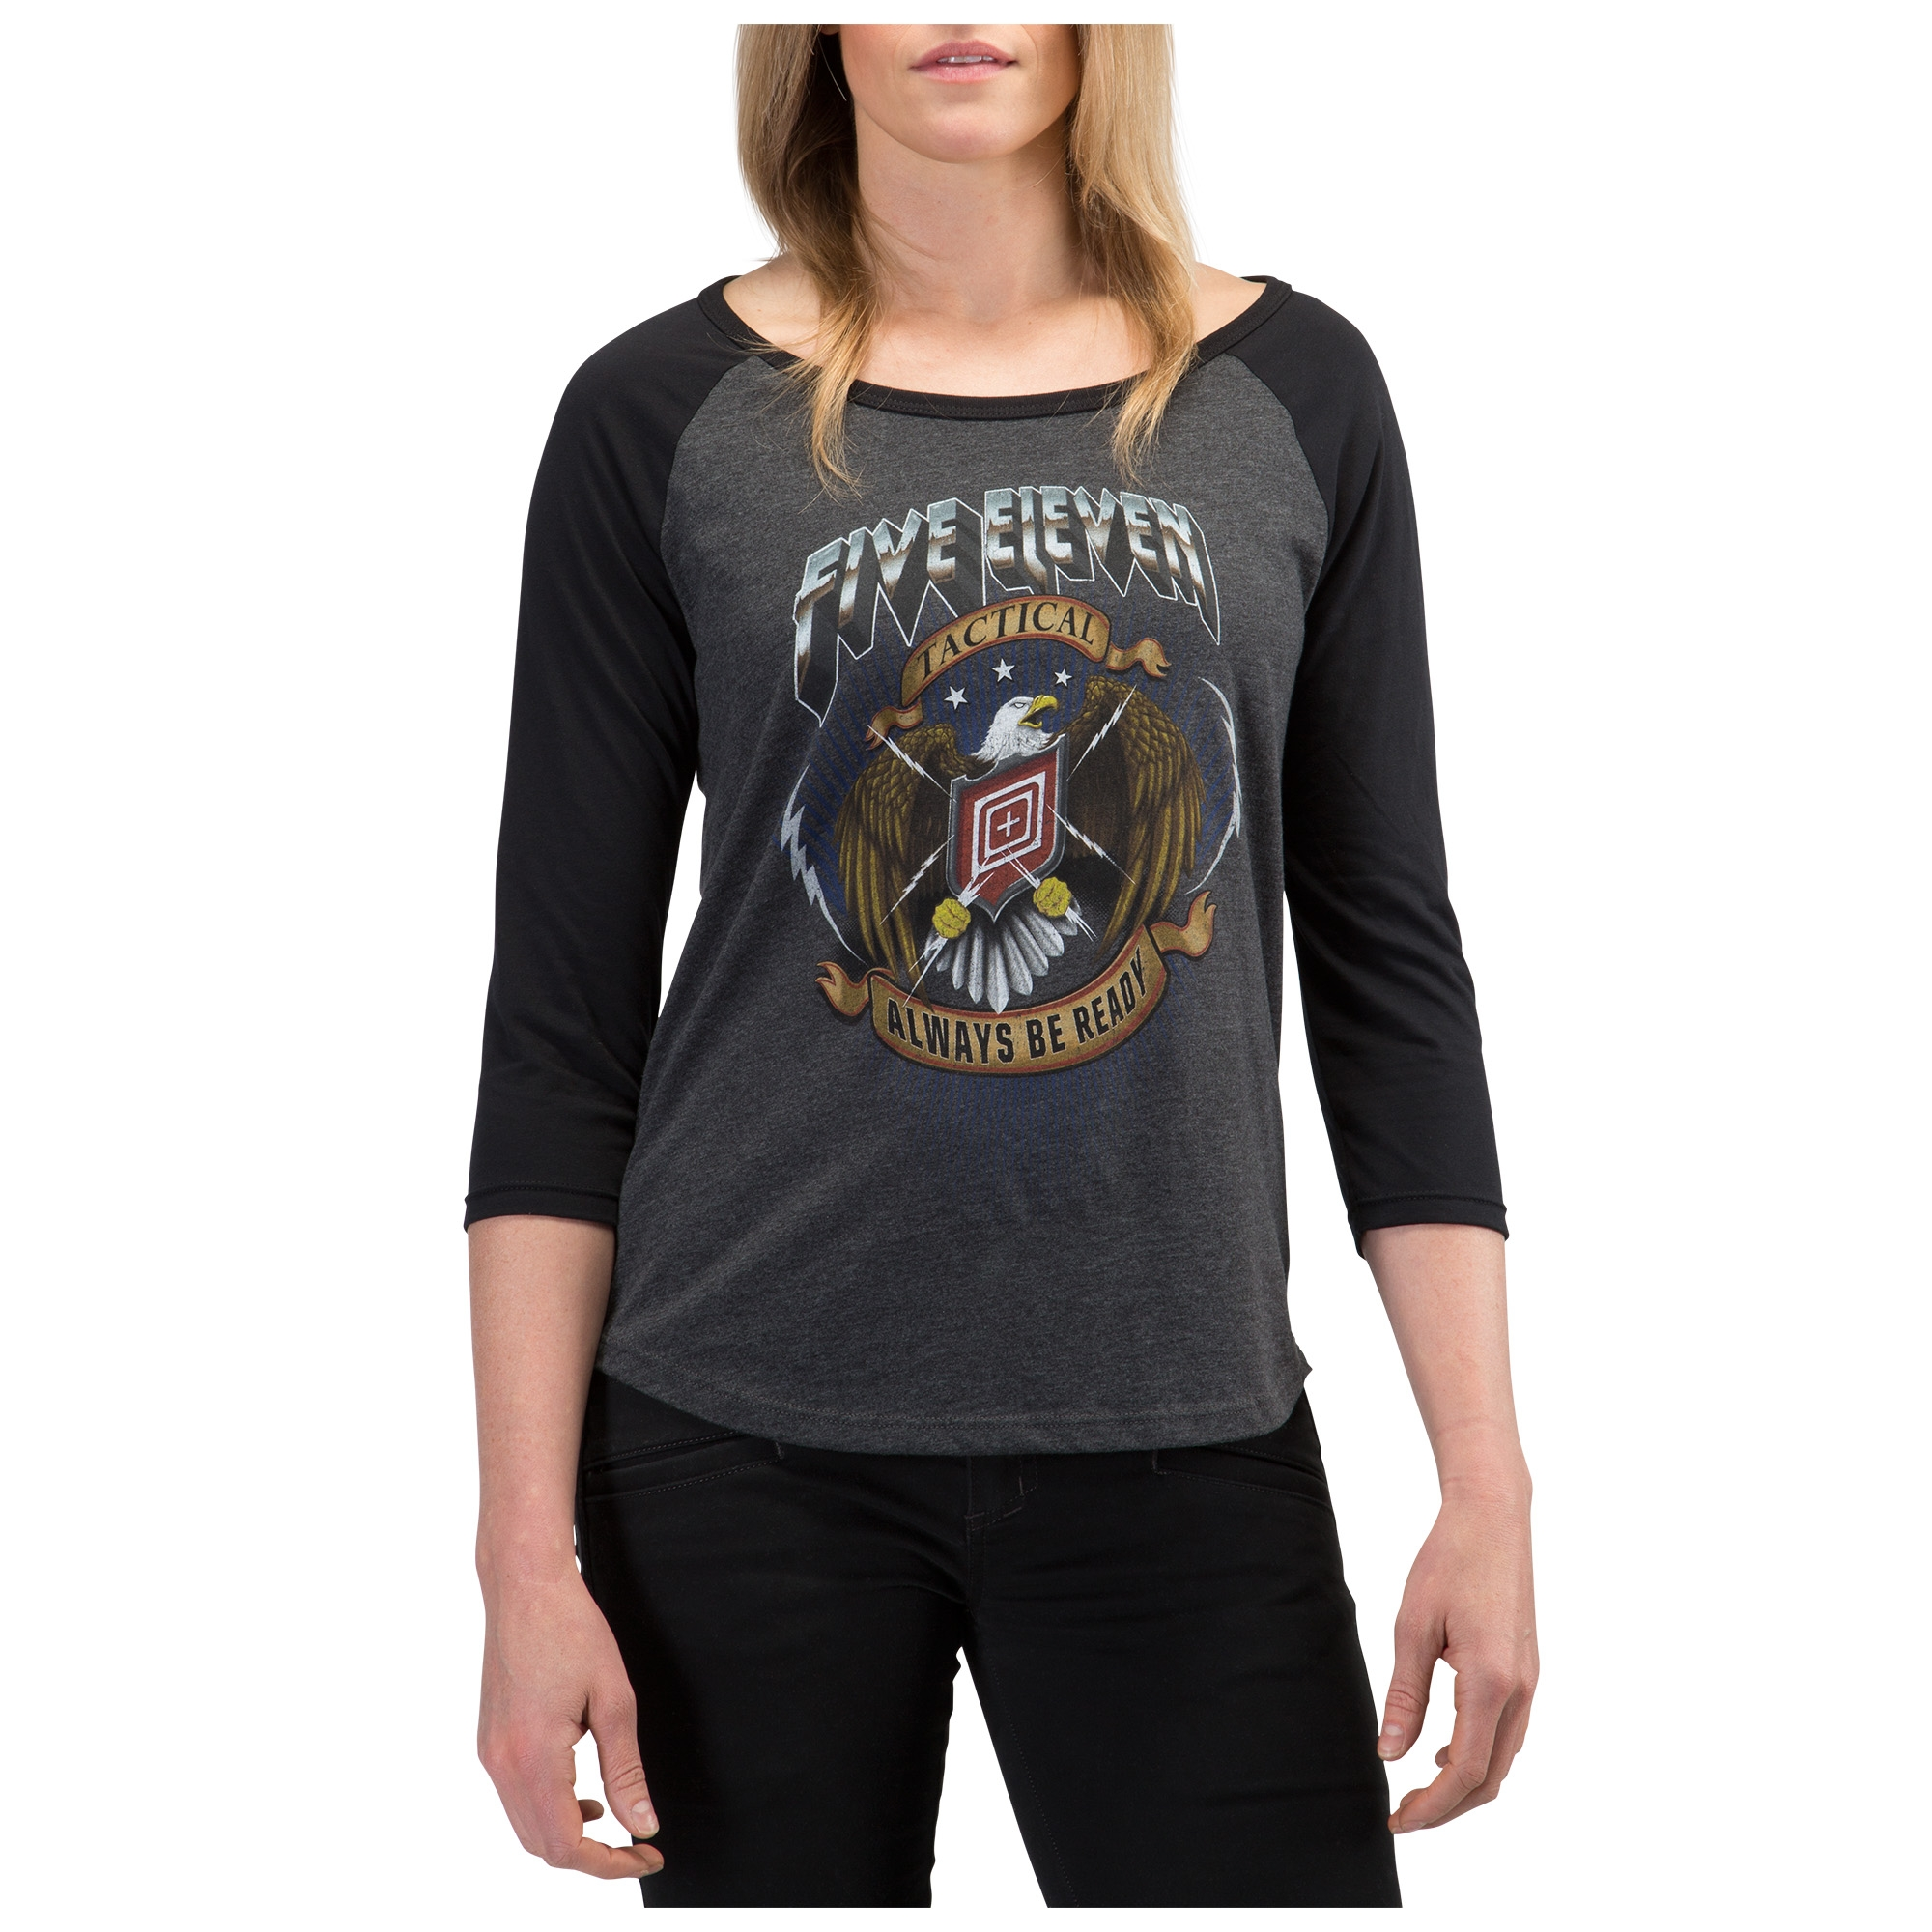 5.11 Tactical Women's Eagle Strike Tee (Black)